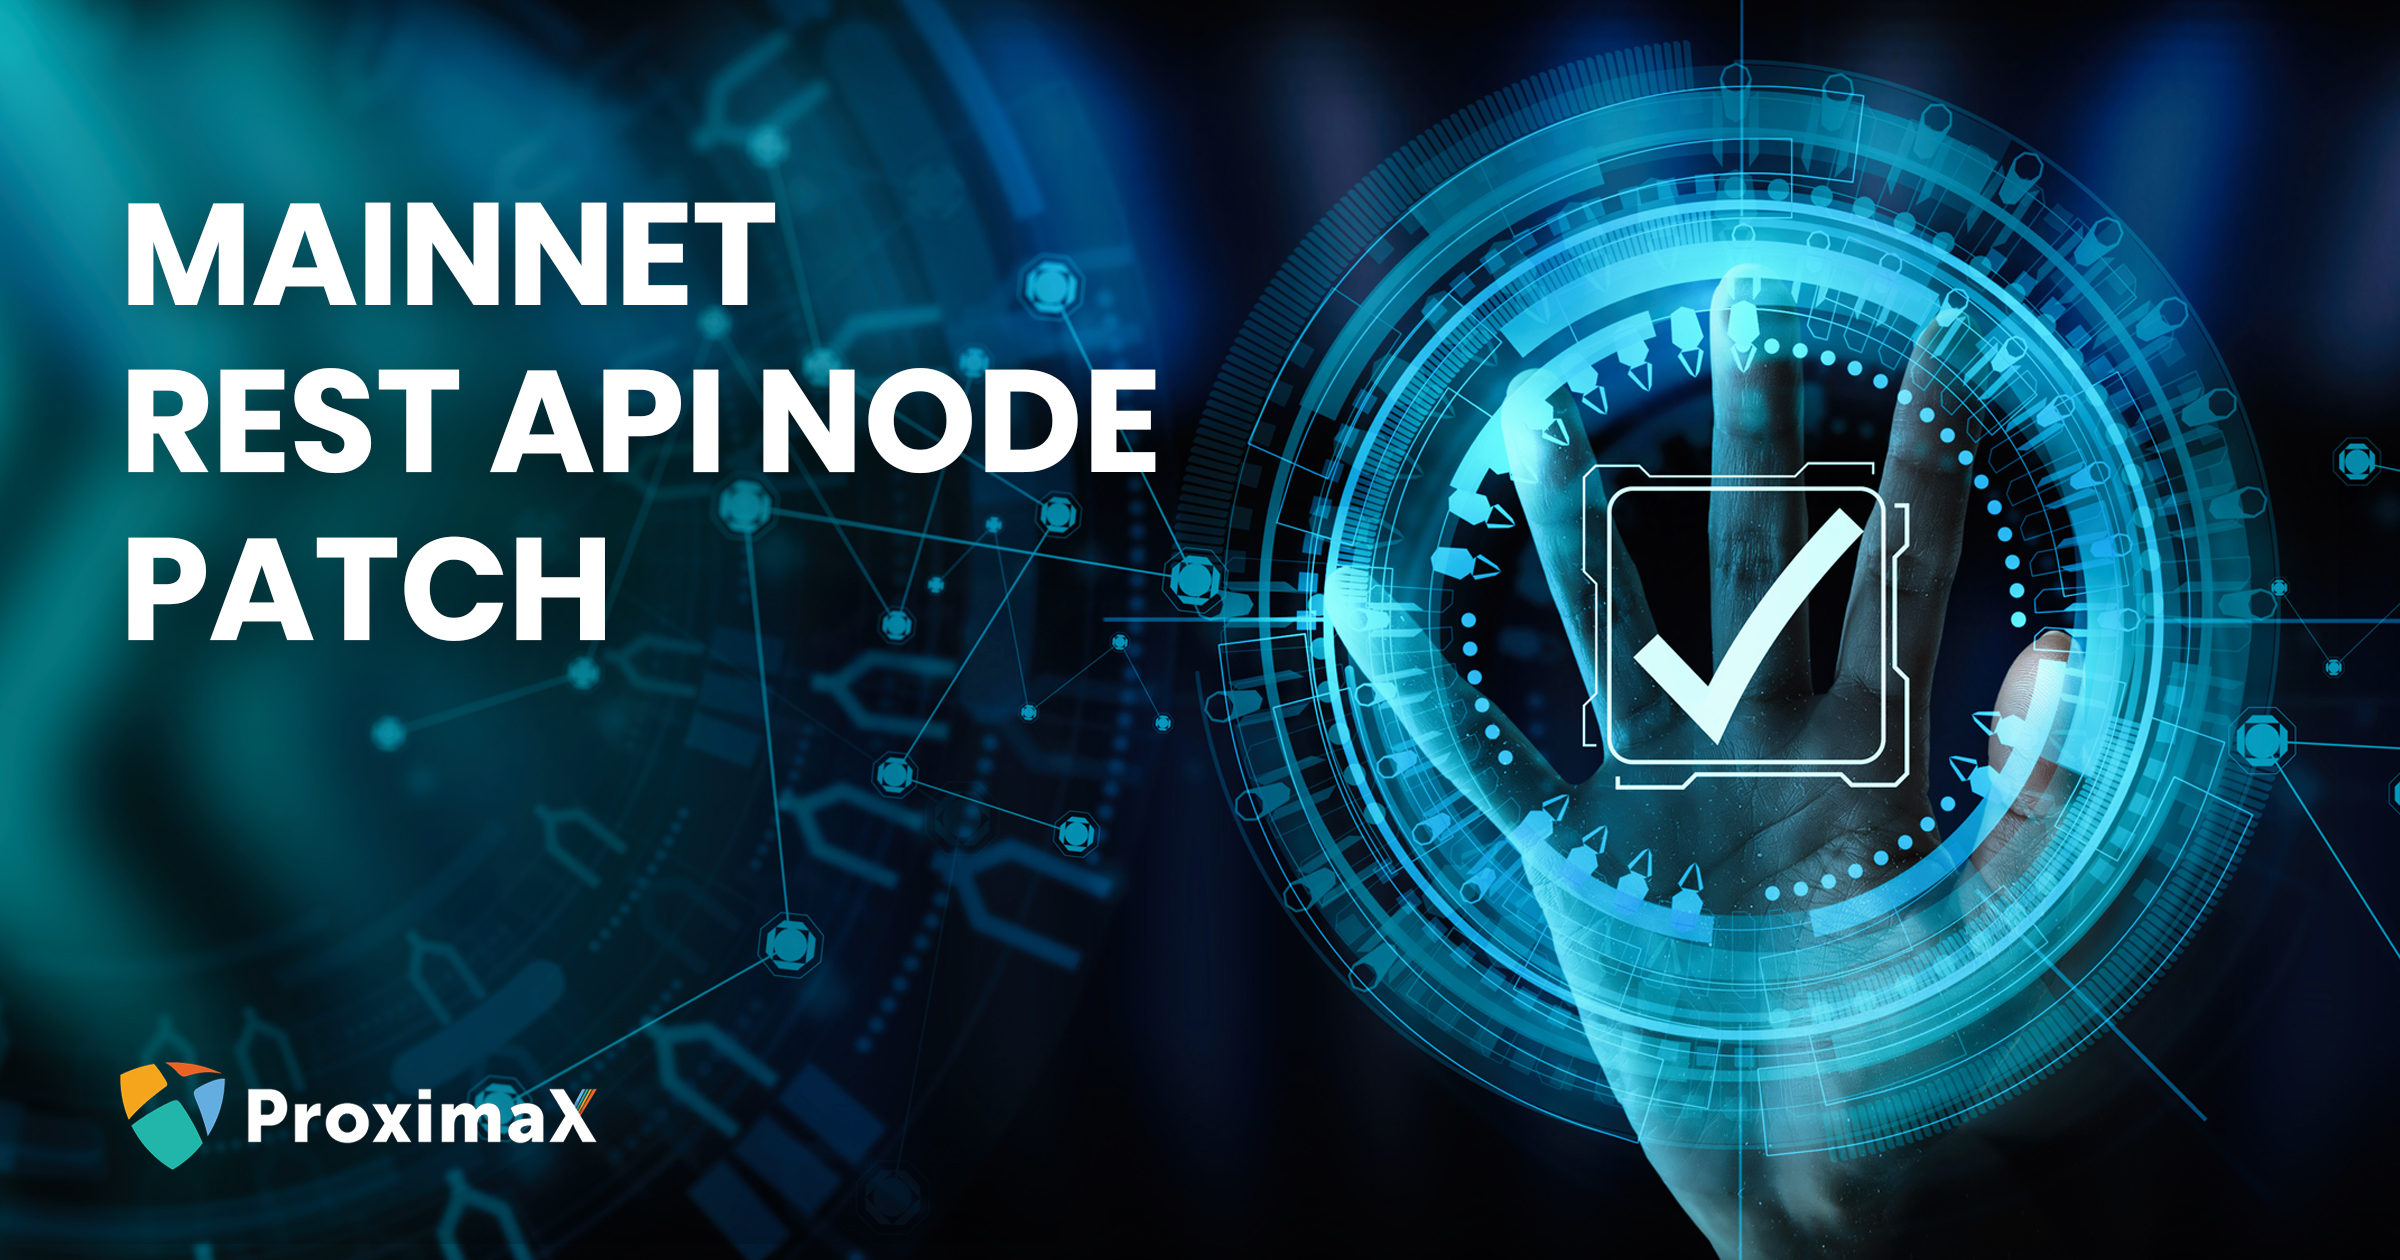 ProximaX Sirius Chain Public Network (Mainnet) – REST API Node Patch